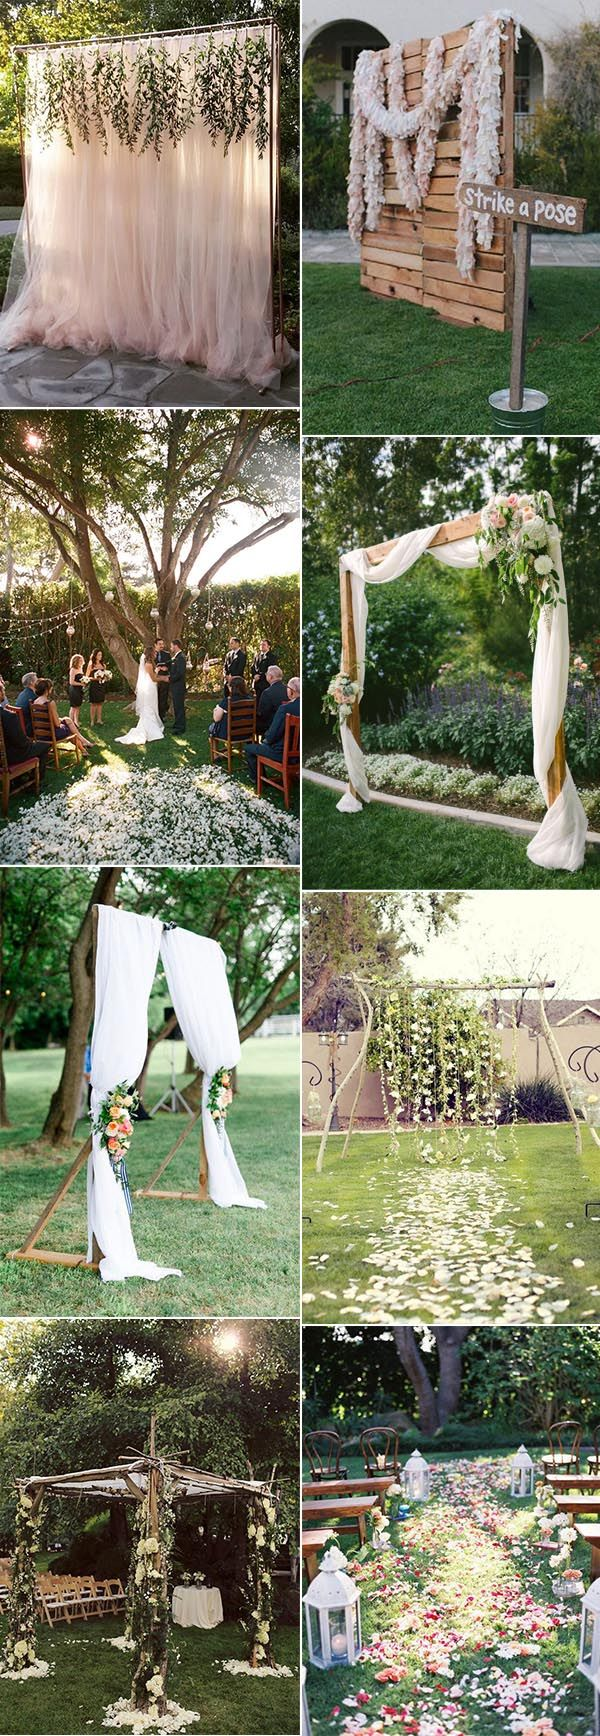 37 Backyard Wedding Ideas To Stand Out 2019 – Trendy Wedding Ideas Blog